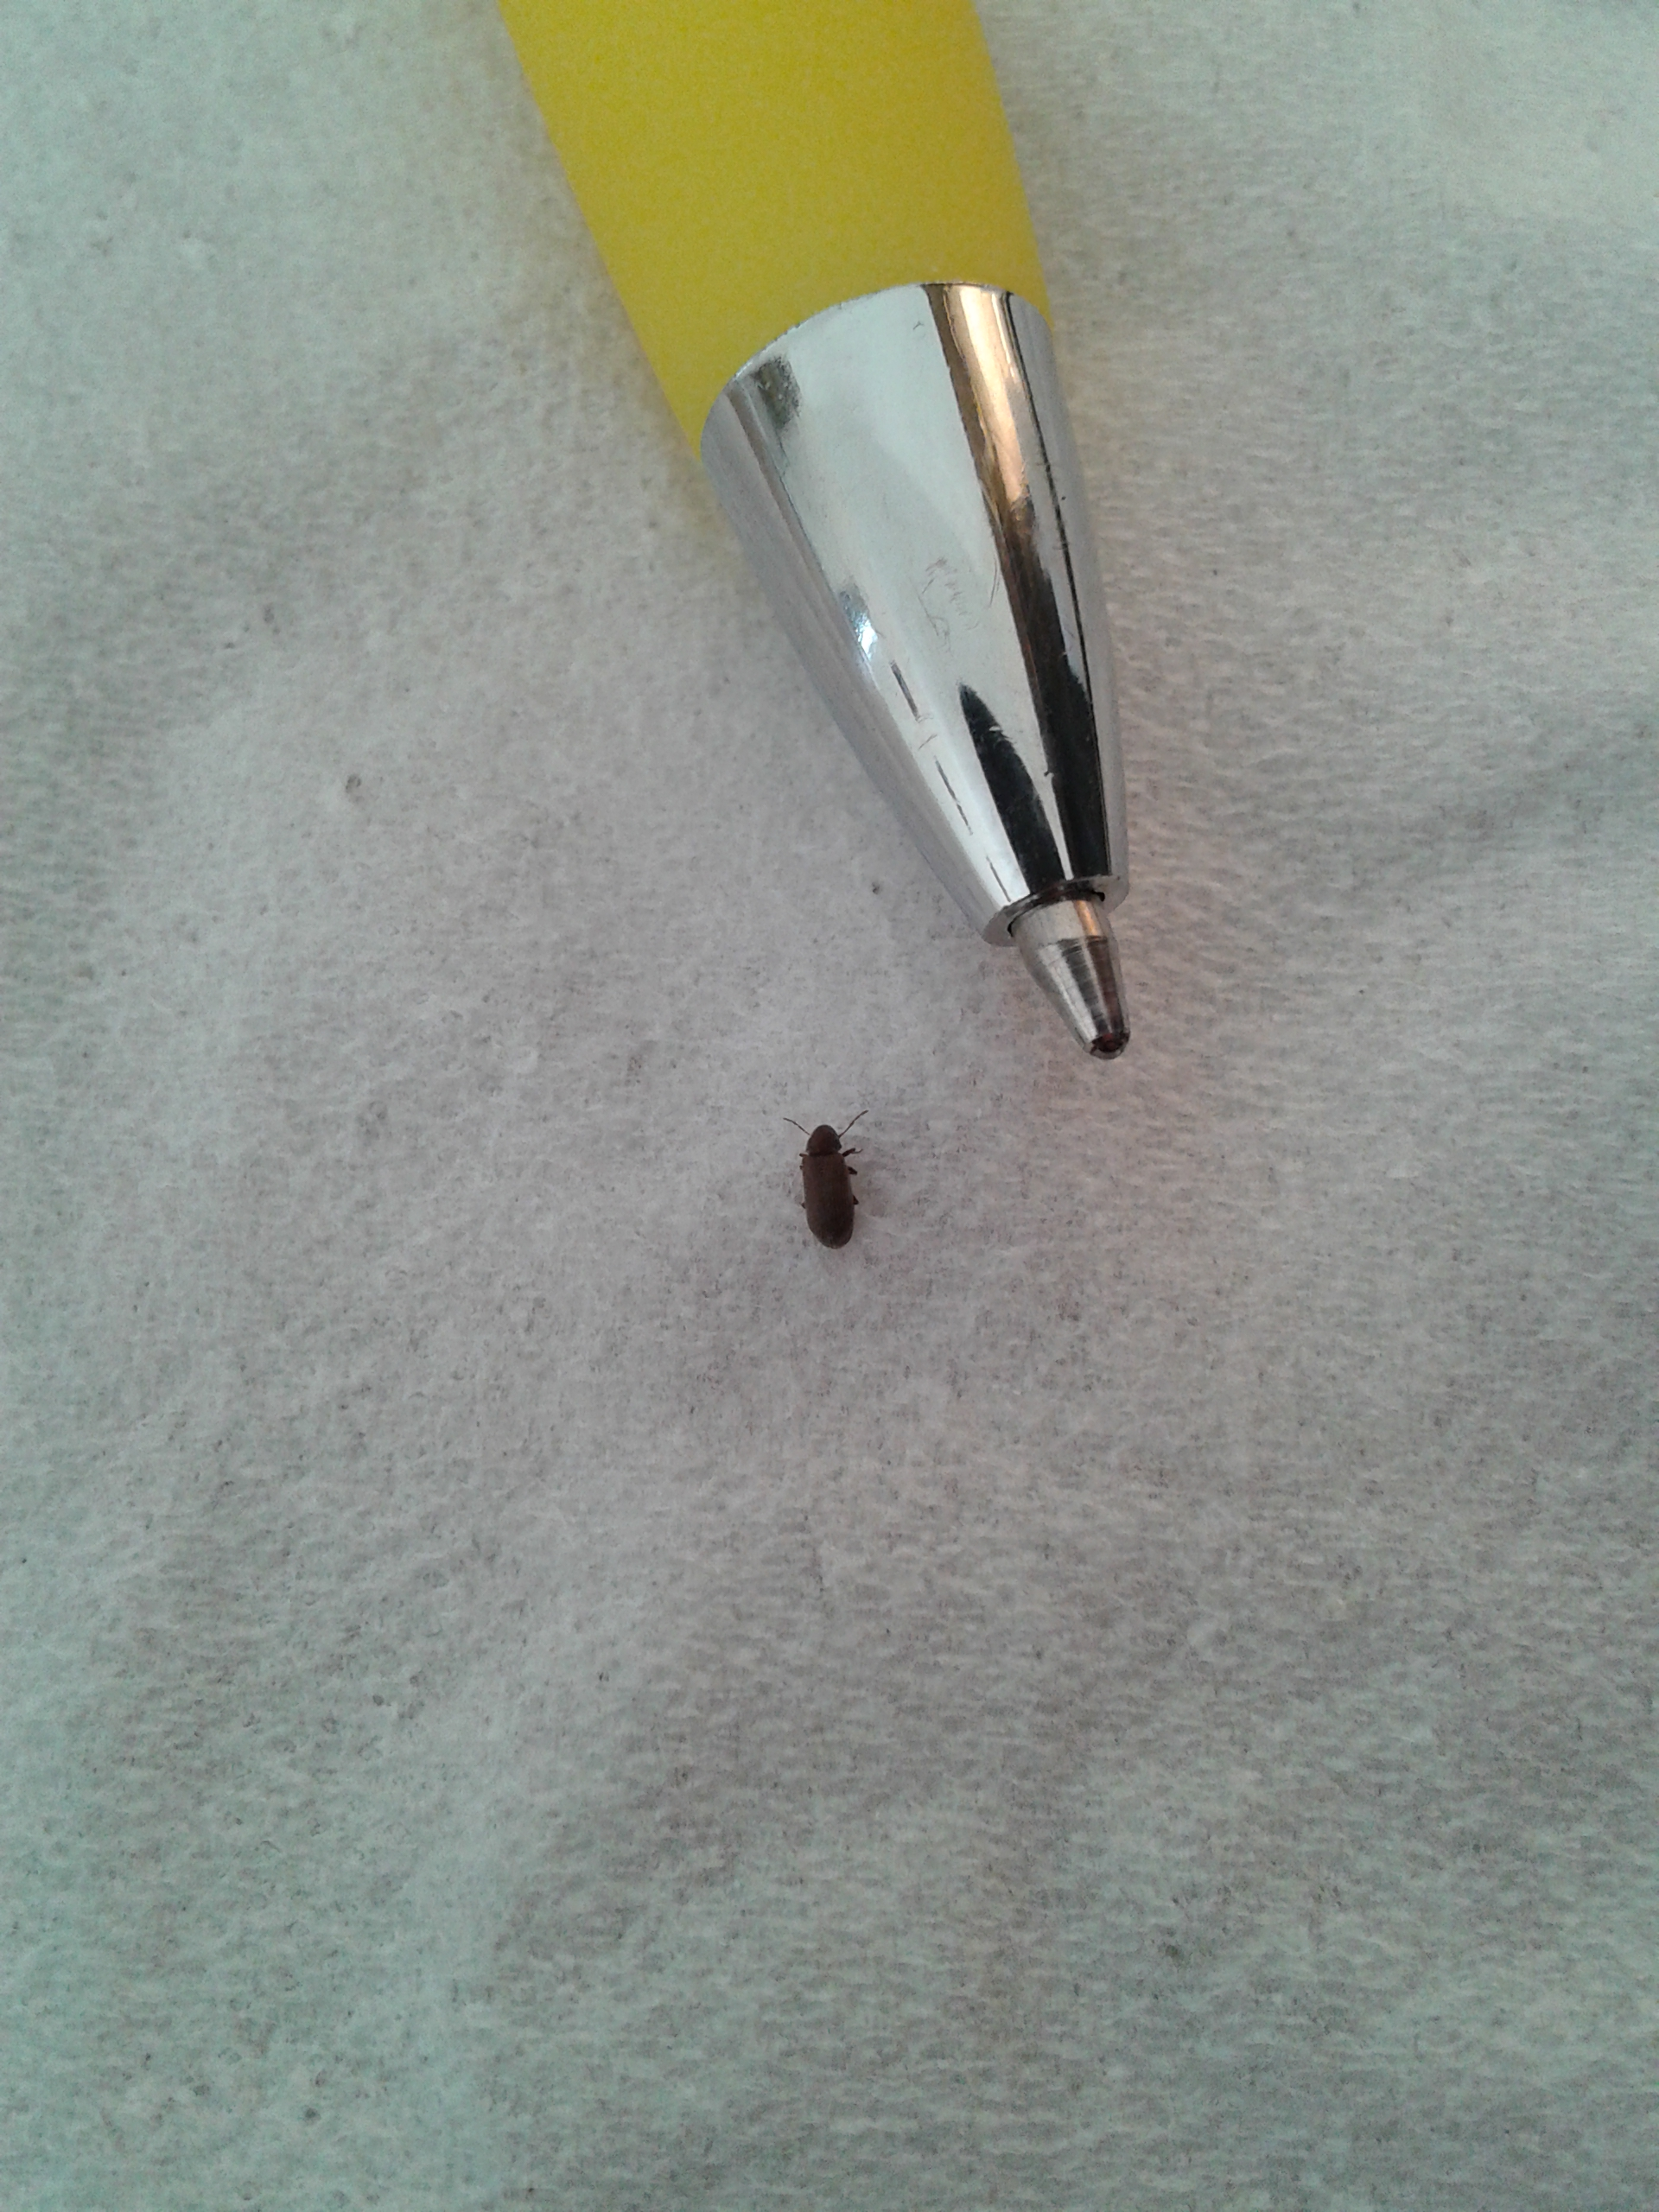 NaturePlus: Tiny black bugs around the house